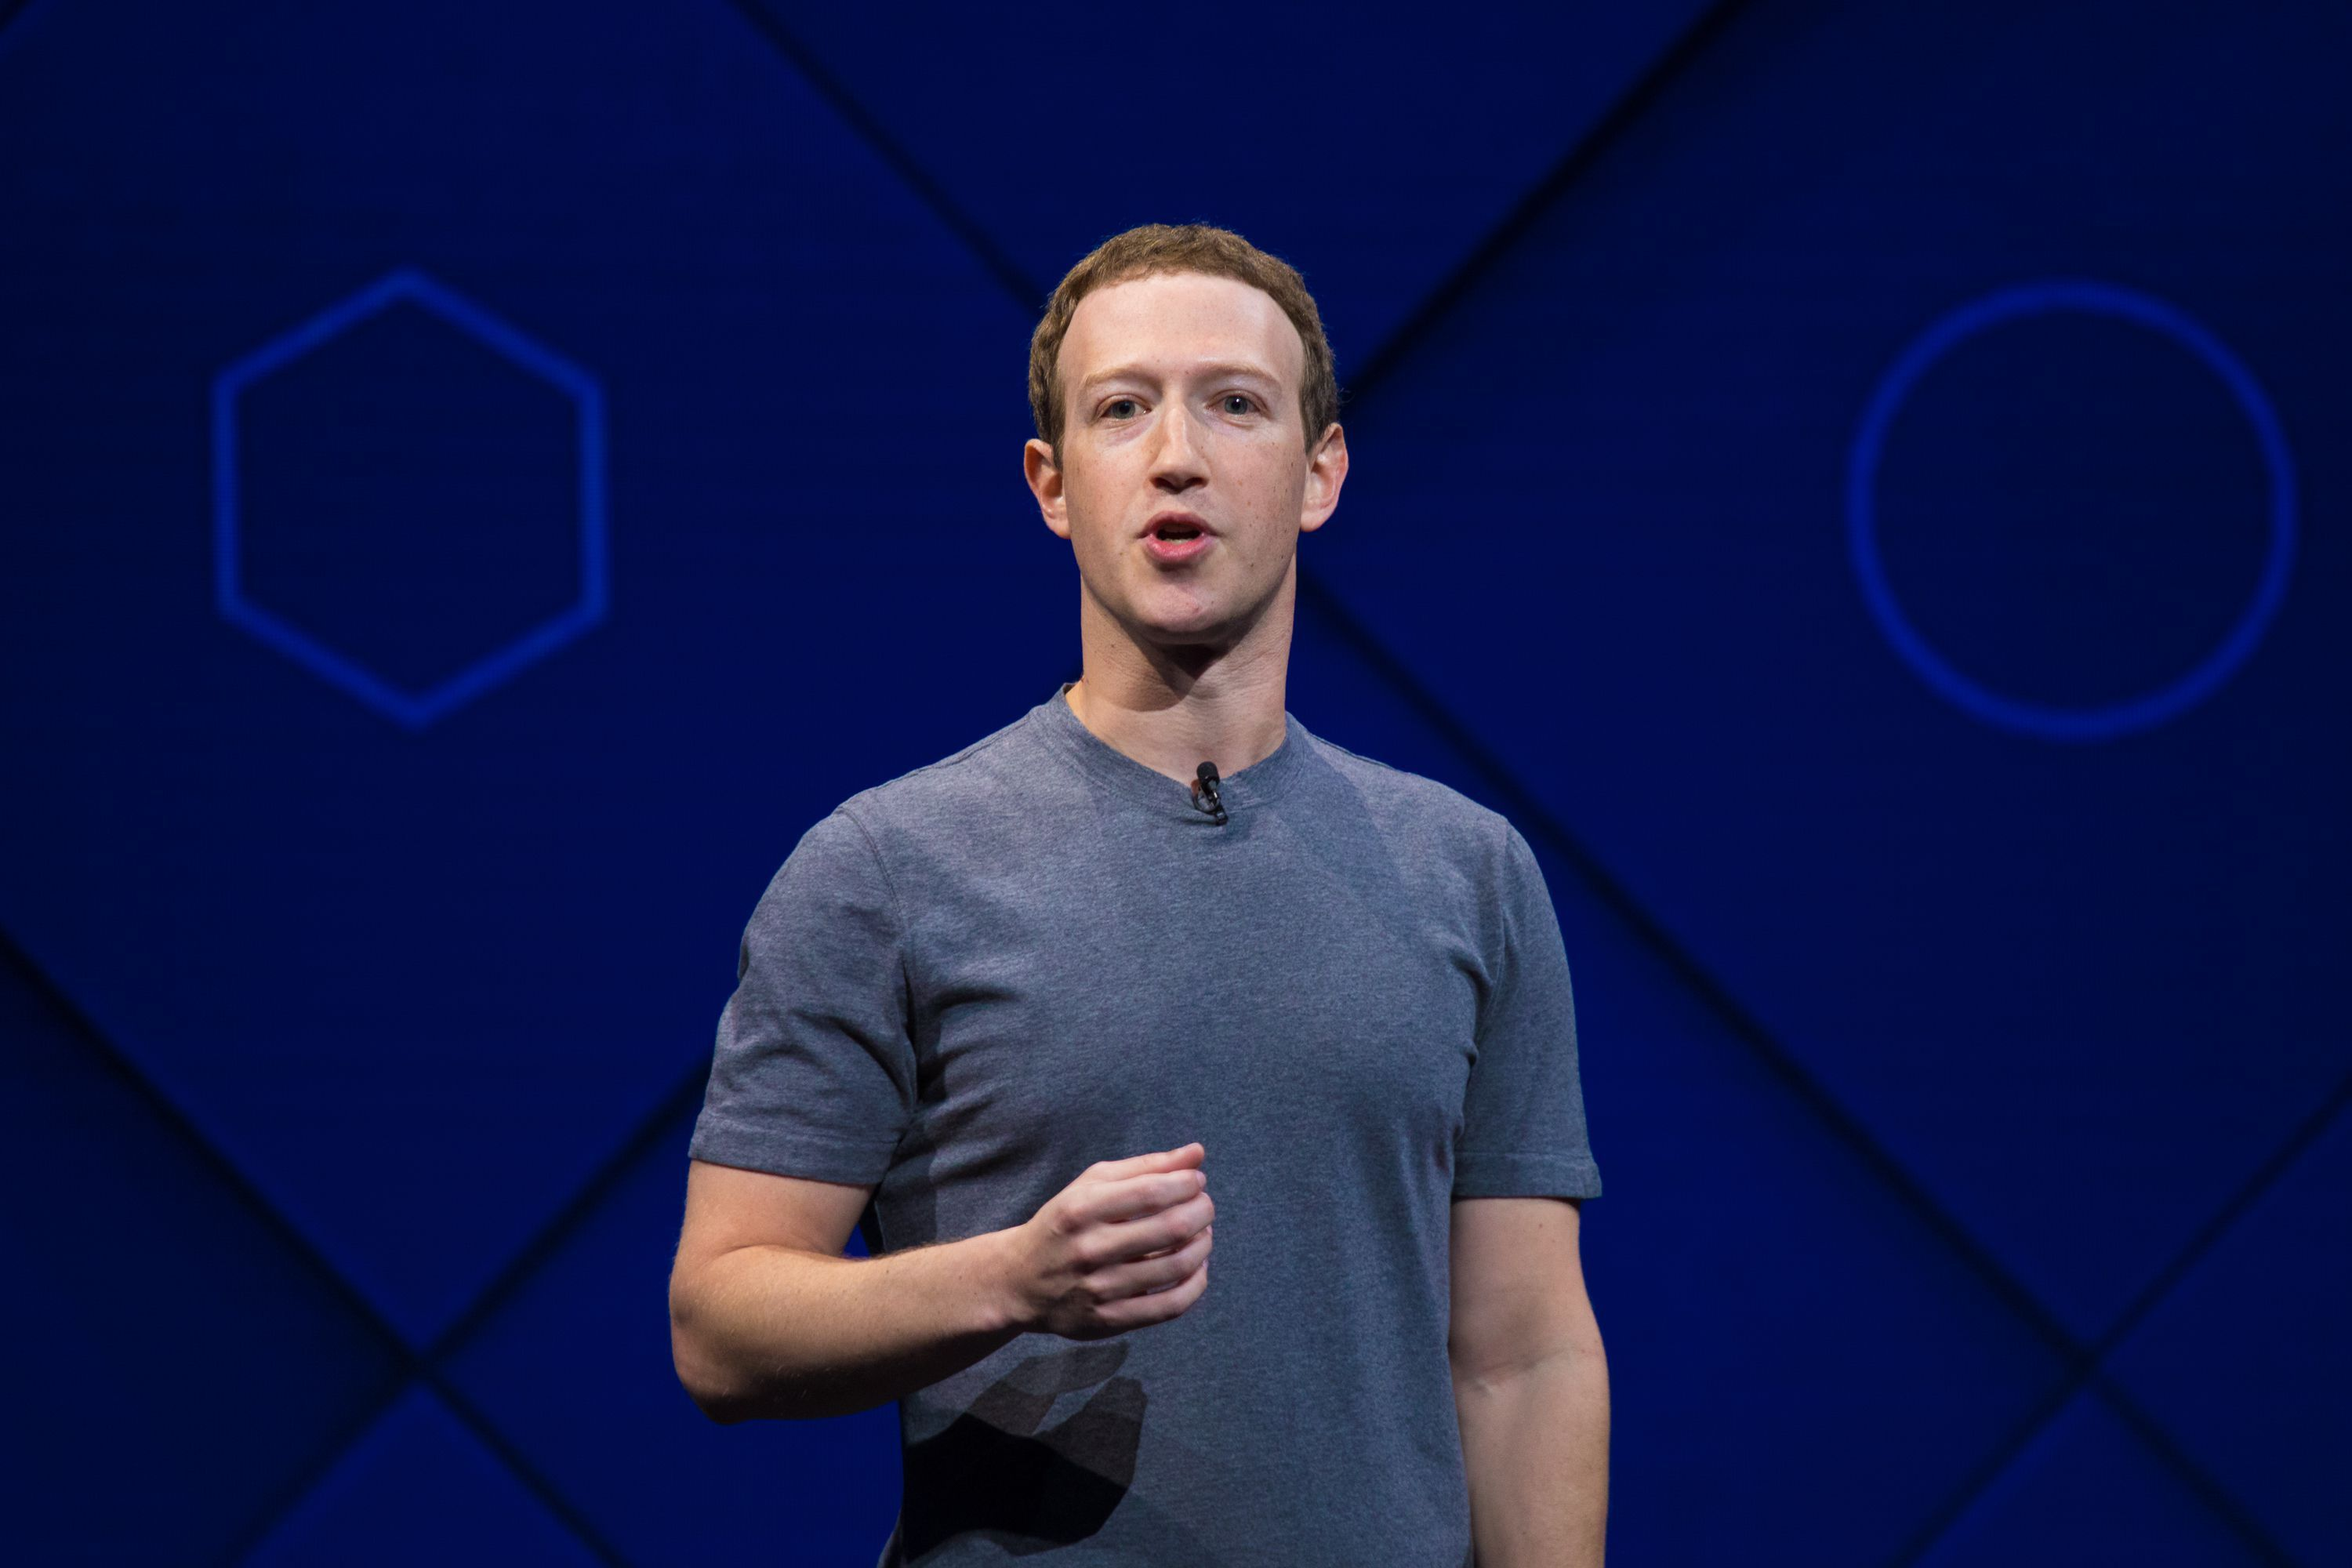 FacebookのCEO、Mark Zuckerberg氏